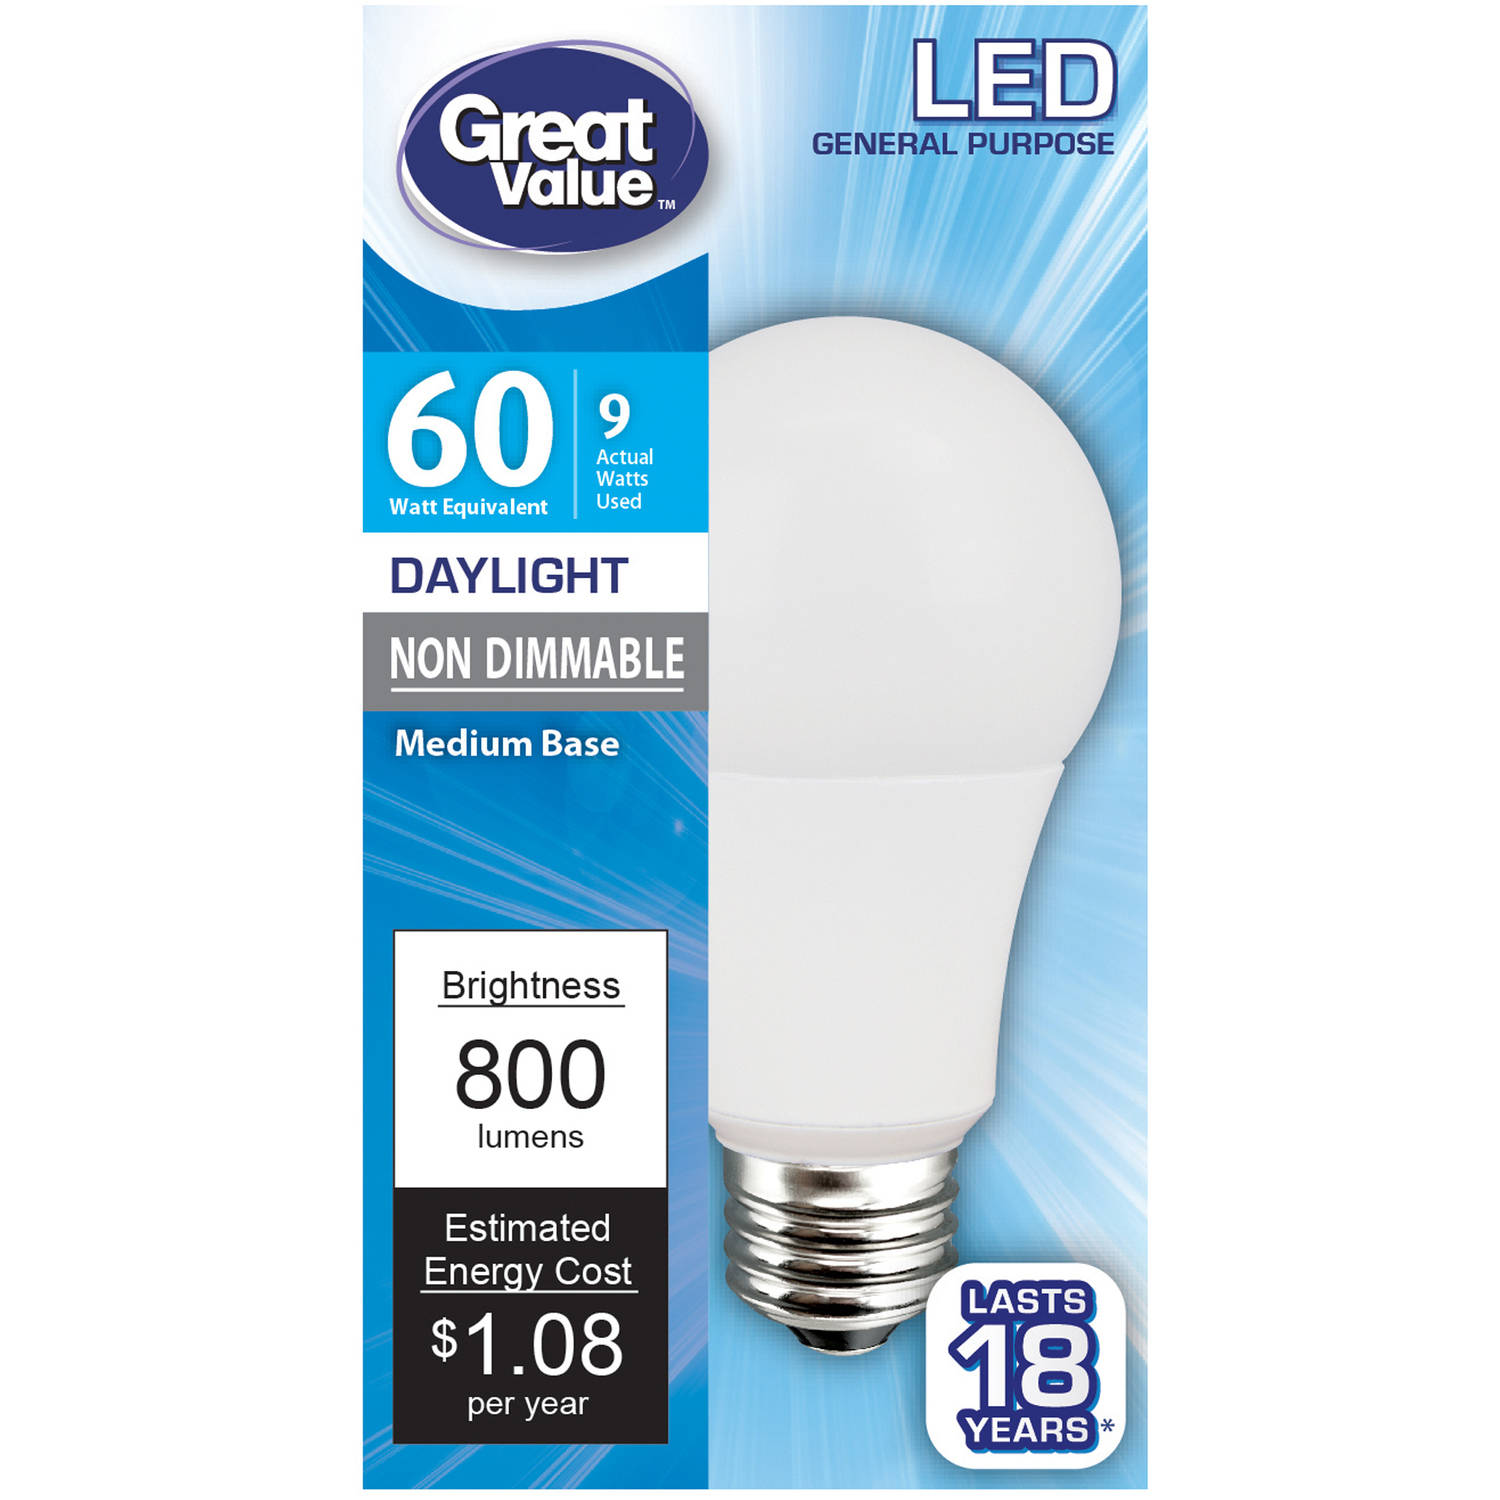 Led Lights At Walmart Great Value Led Light Bulb 9w 60w Equivalent A19 Lamp E26 Medium Base Non Dimmable Daylight